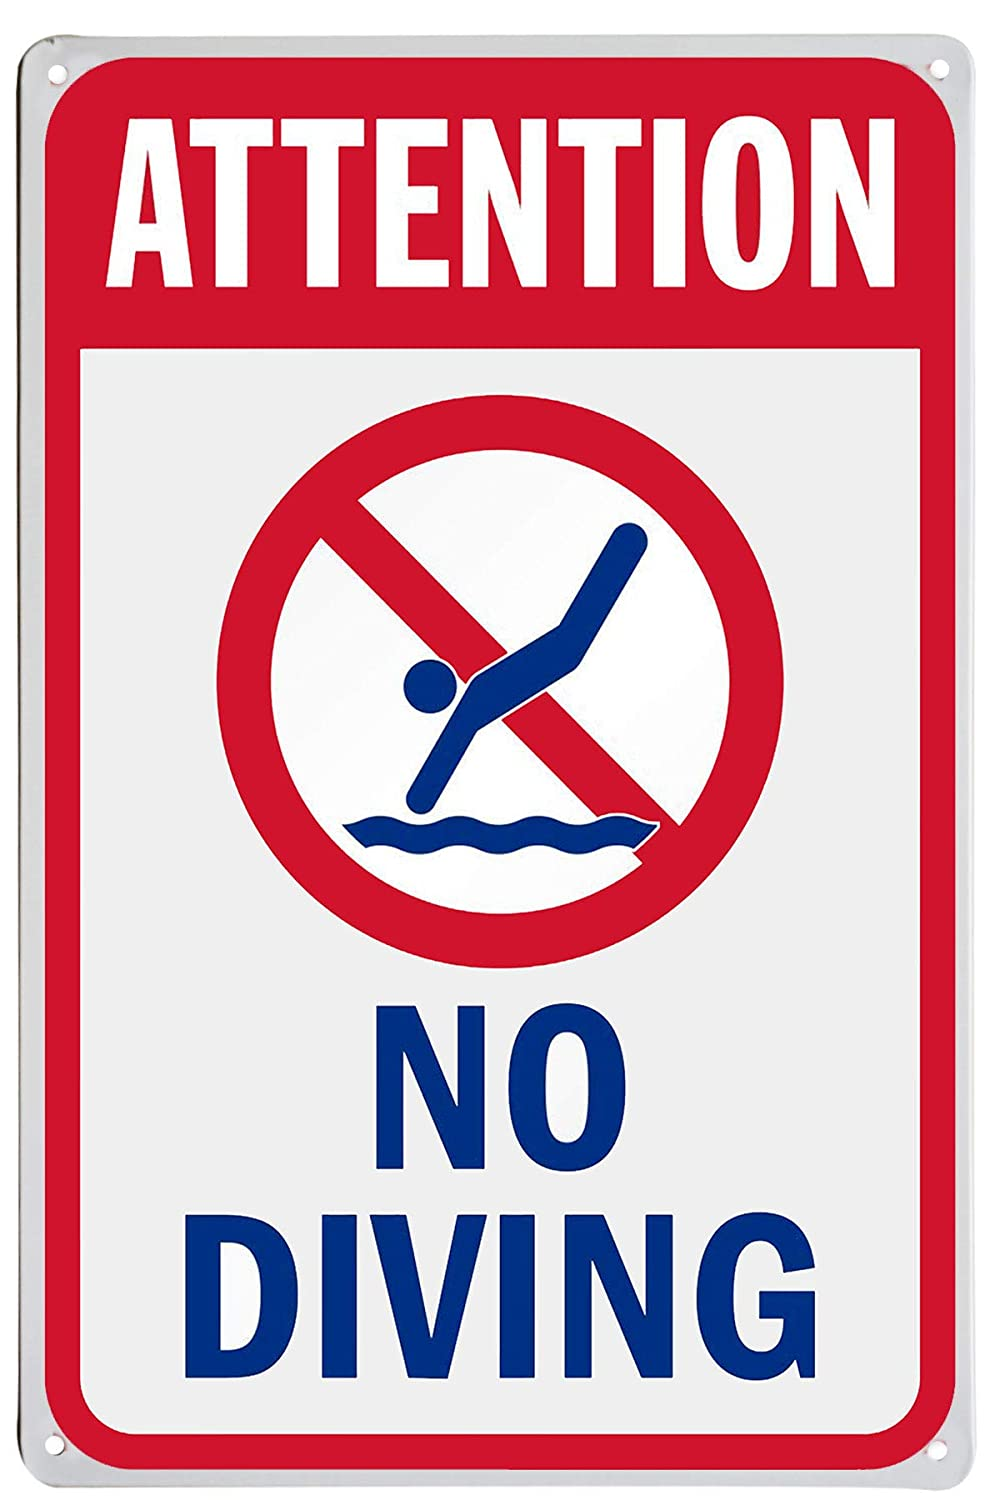 "LASMINE""Attention -No Diving"" Sign Pool Signs Sign No Diving Swimming Warning High Cost Free Parking Pools Mount Caution Chemical Safety Gifts 8X12Inch"